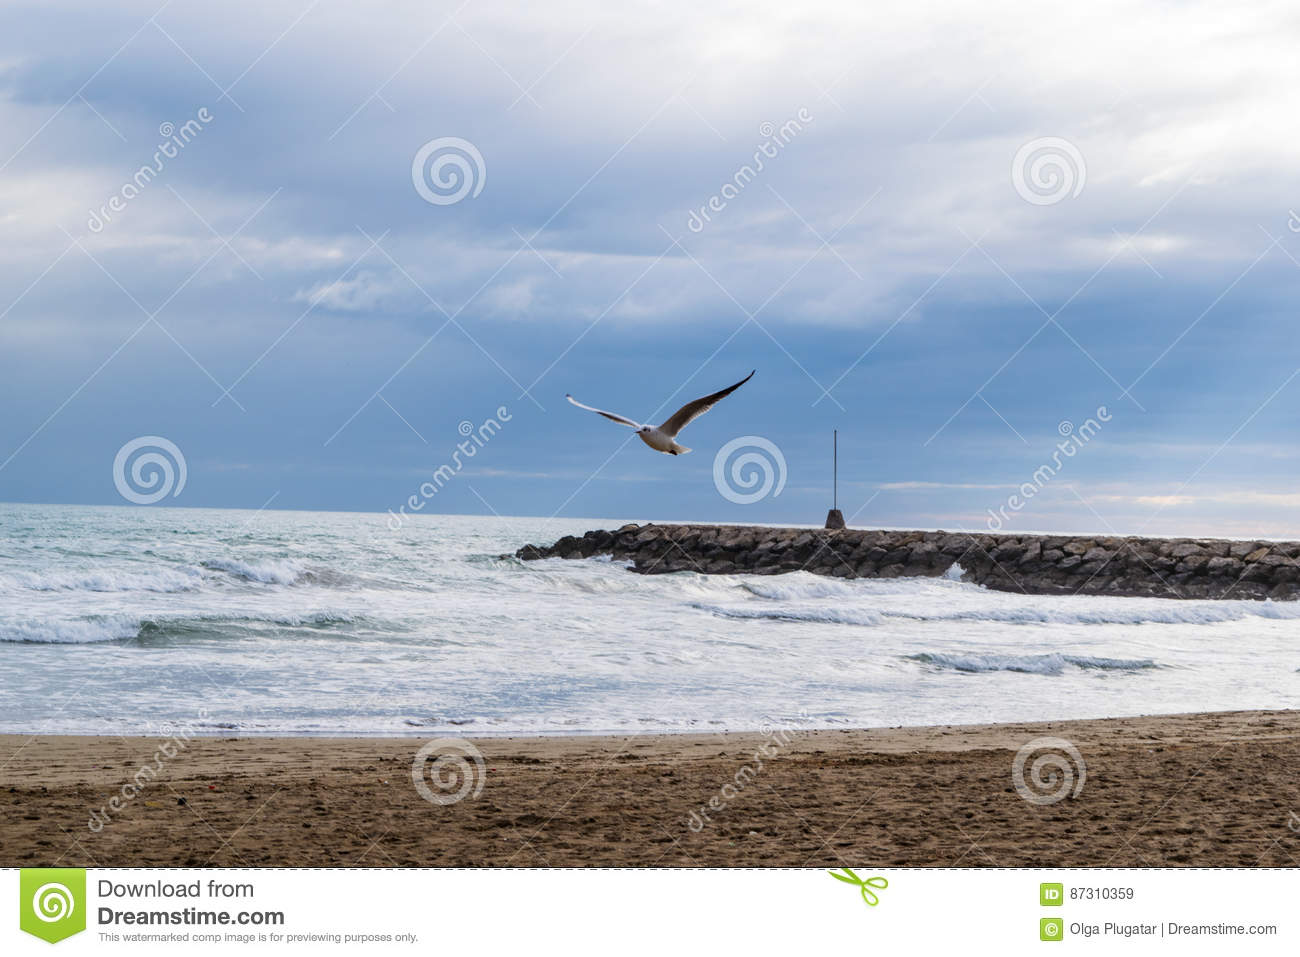 Seagull flying against blue dramatic cloudy sky